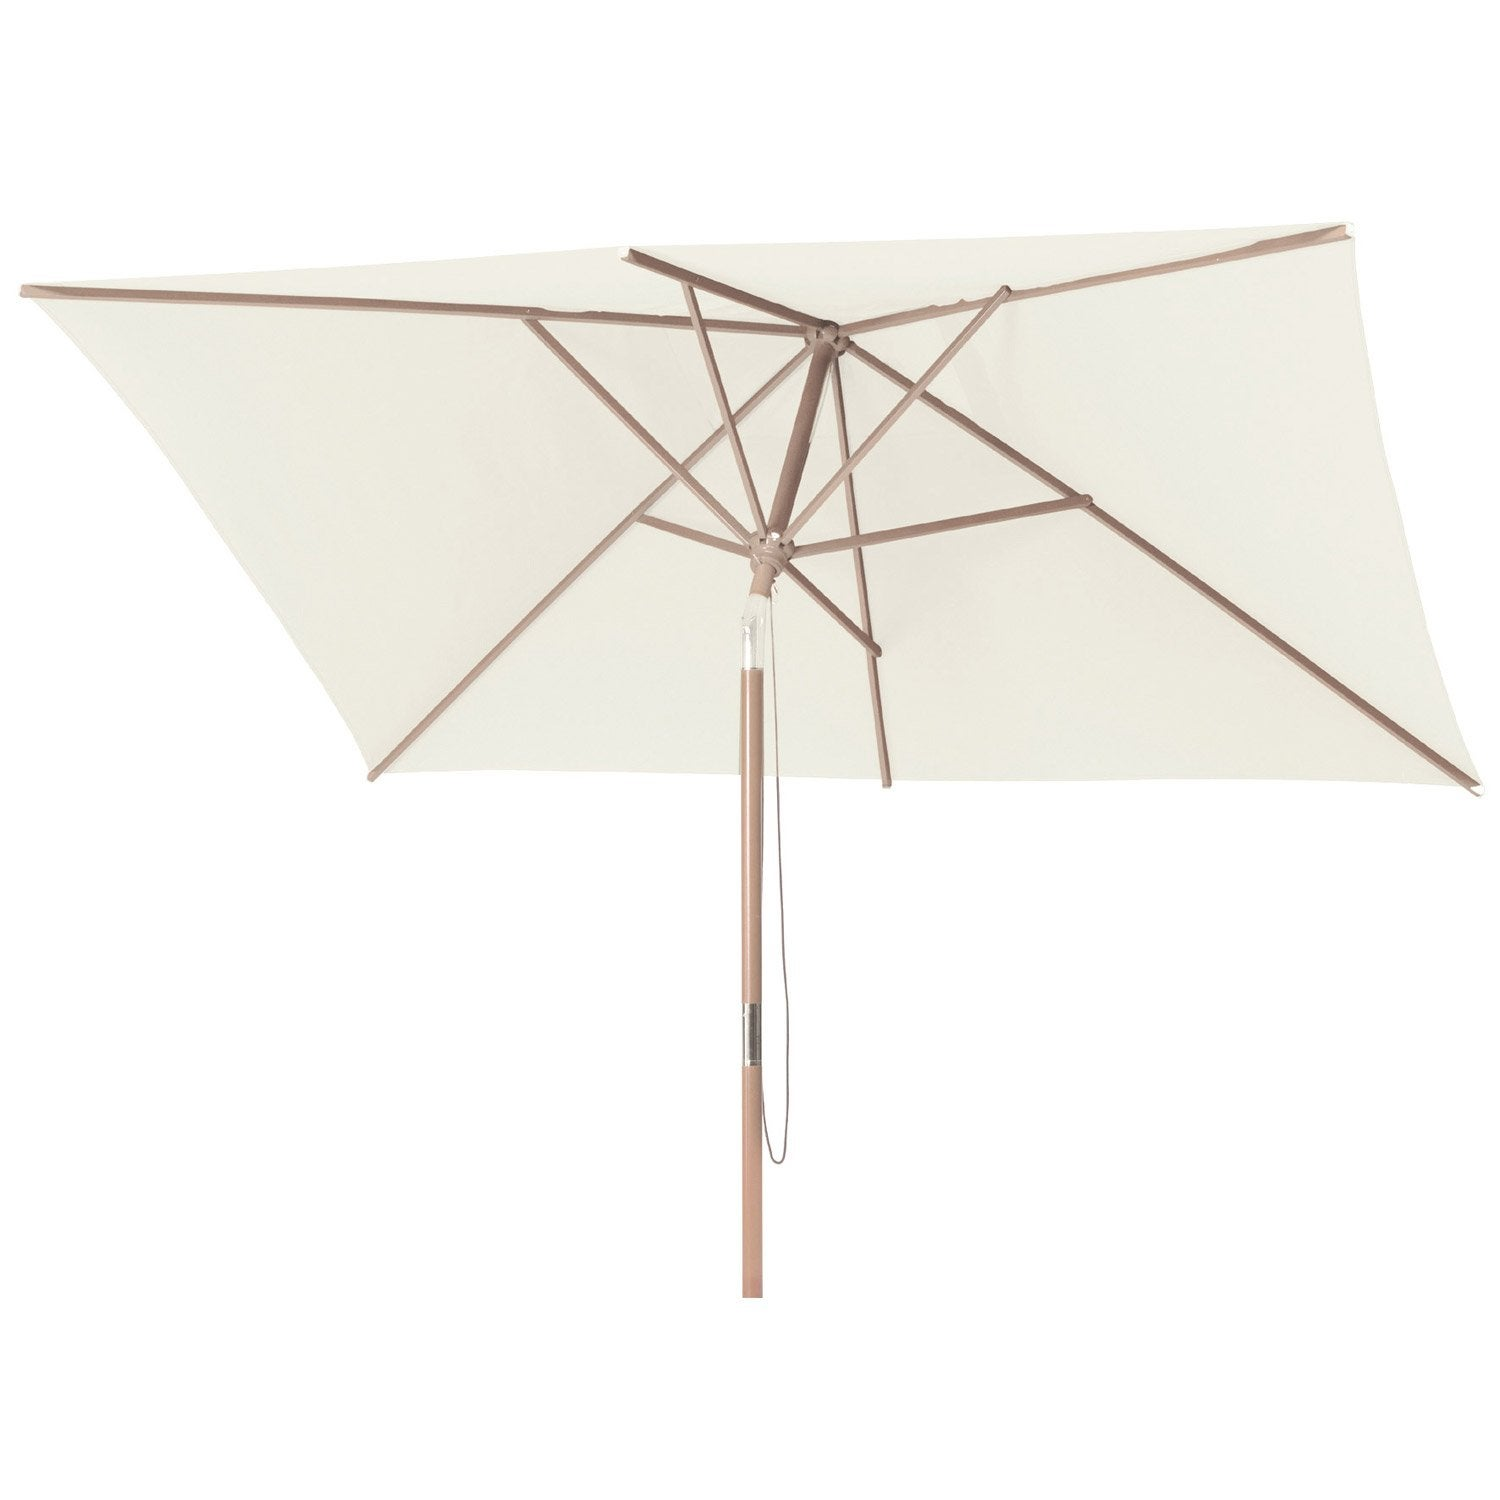 Parasol droit malaga naturel rectangulaire x - Parasol deporte inclinable leroy merlin ...